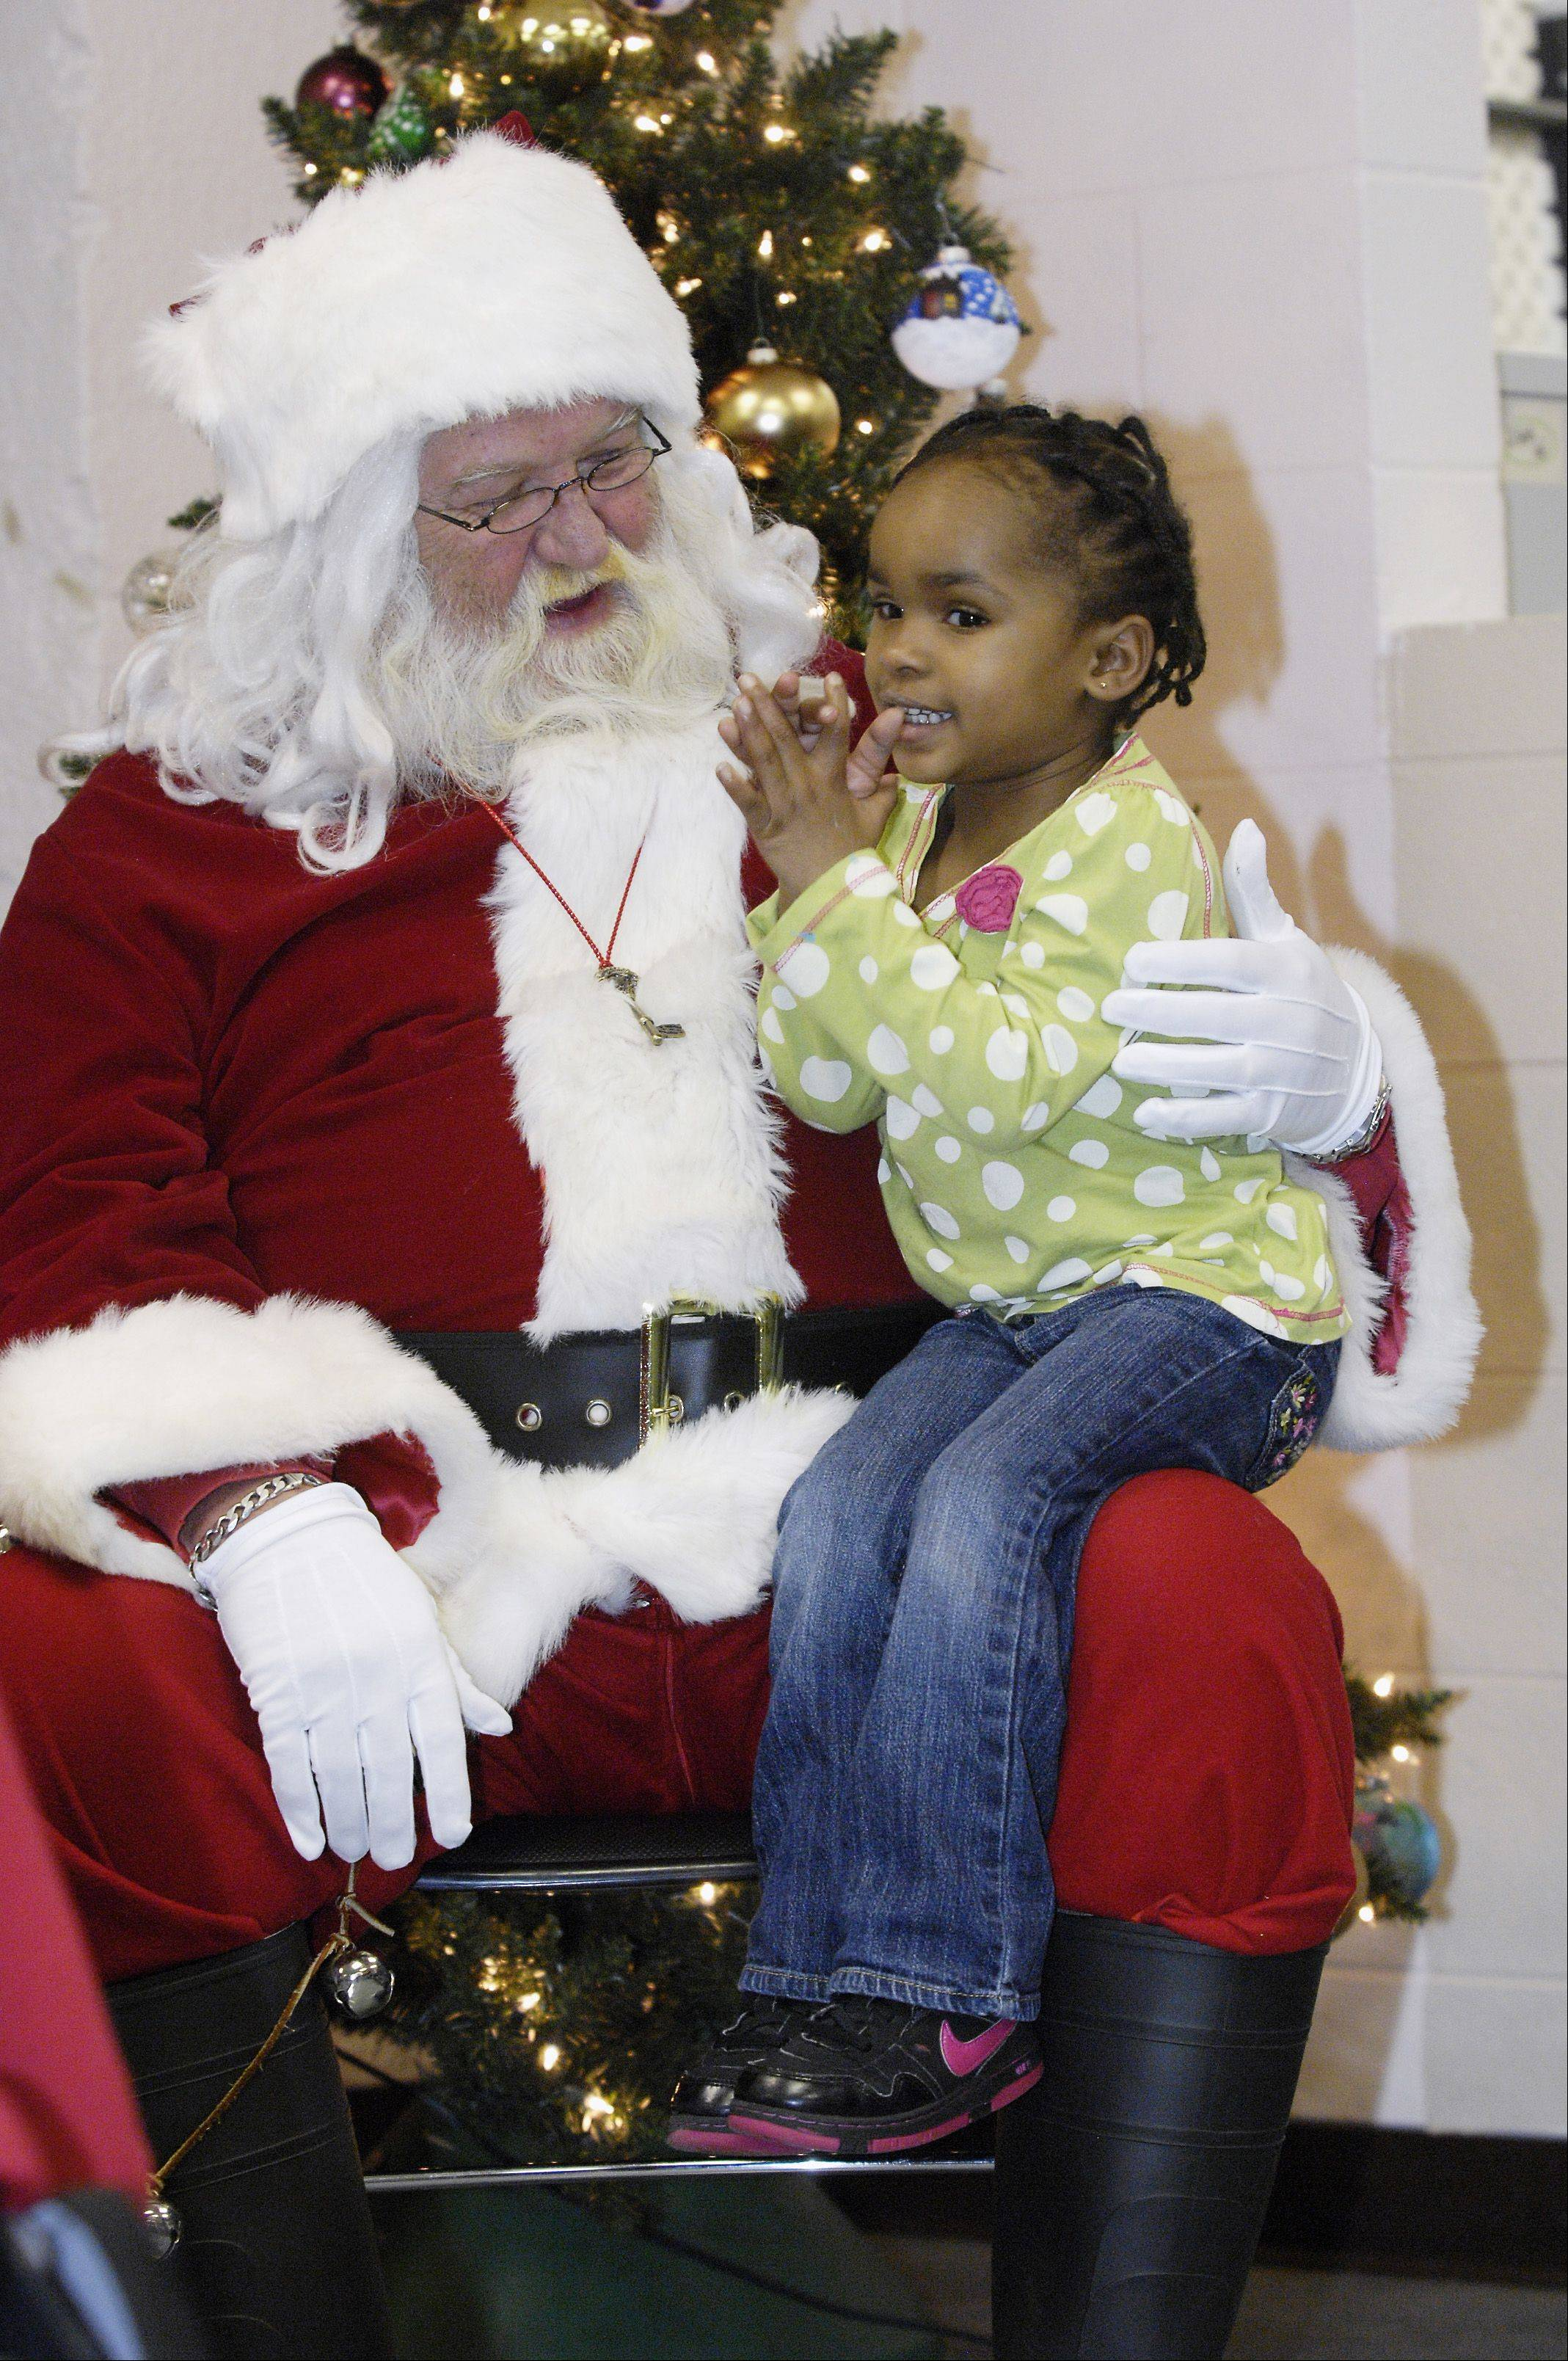 Makayla Mudd, 3, sits on Santa's lap to tell him her Christmas wishes.